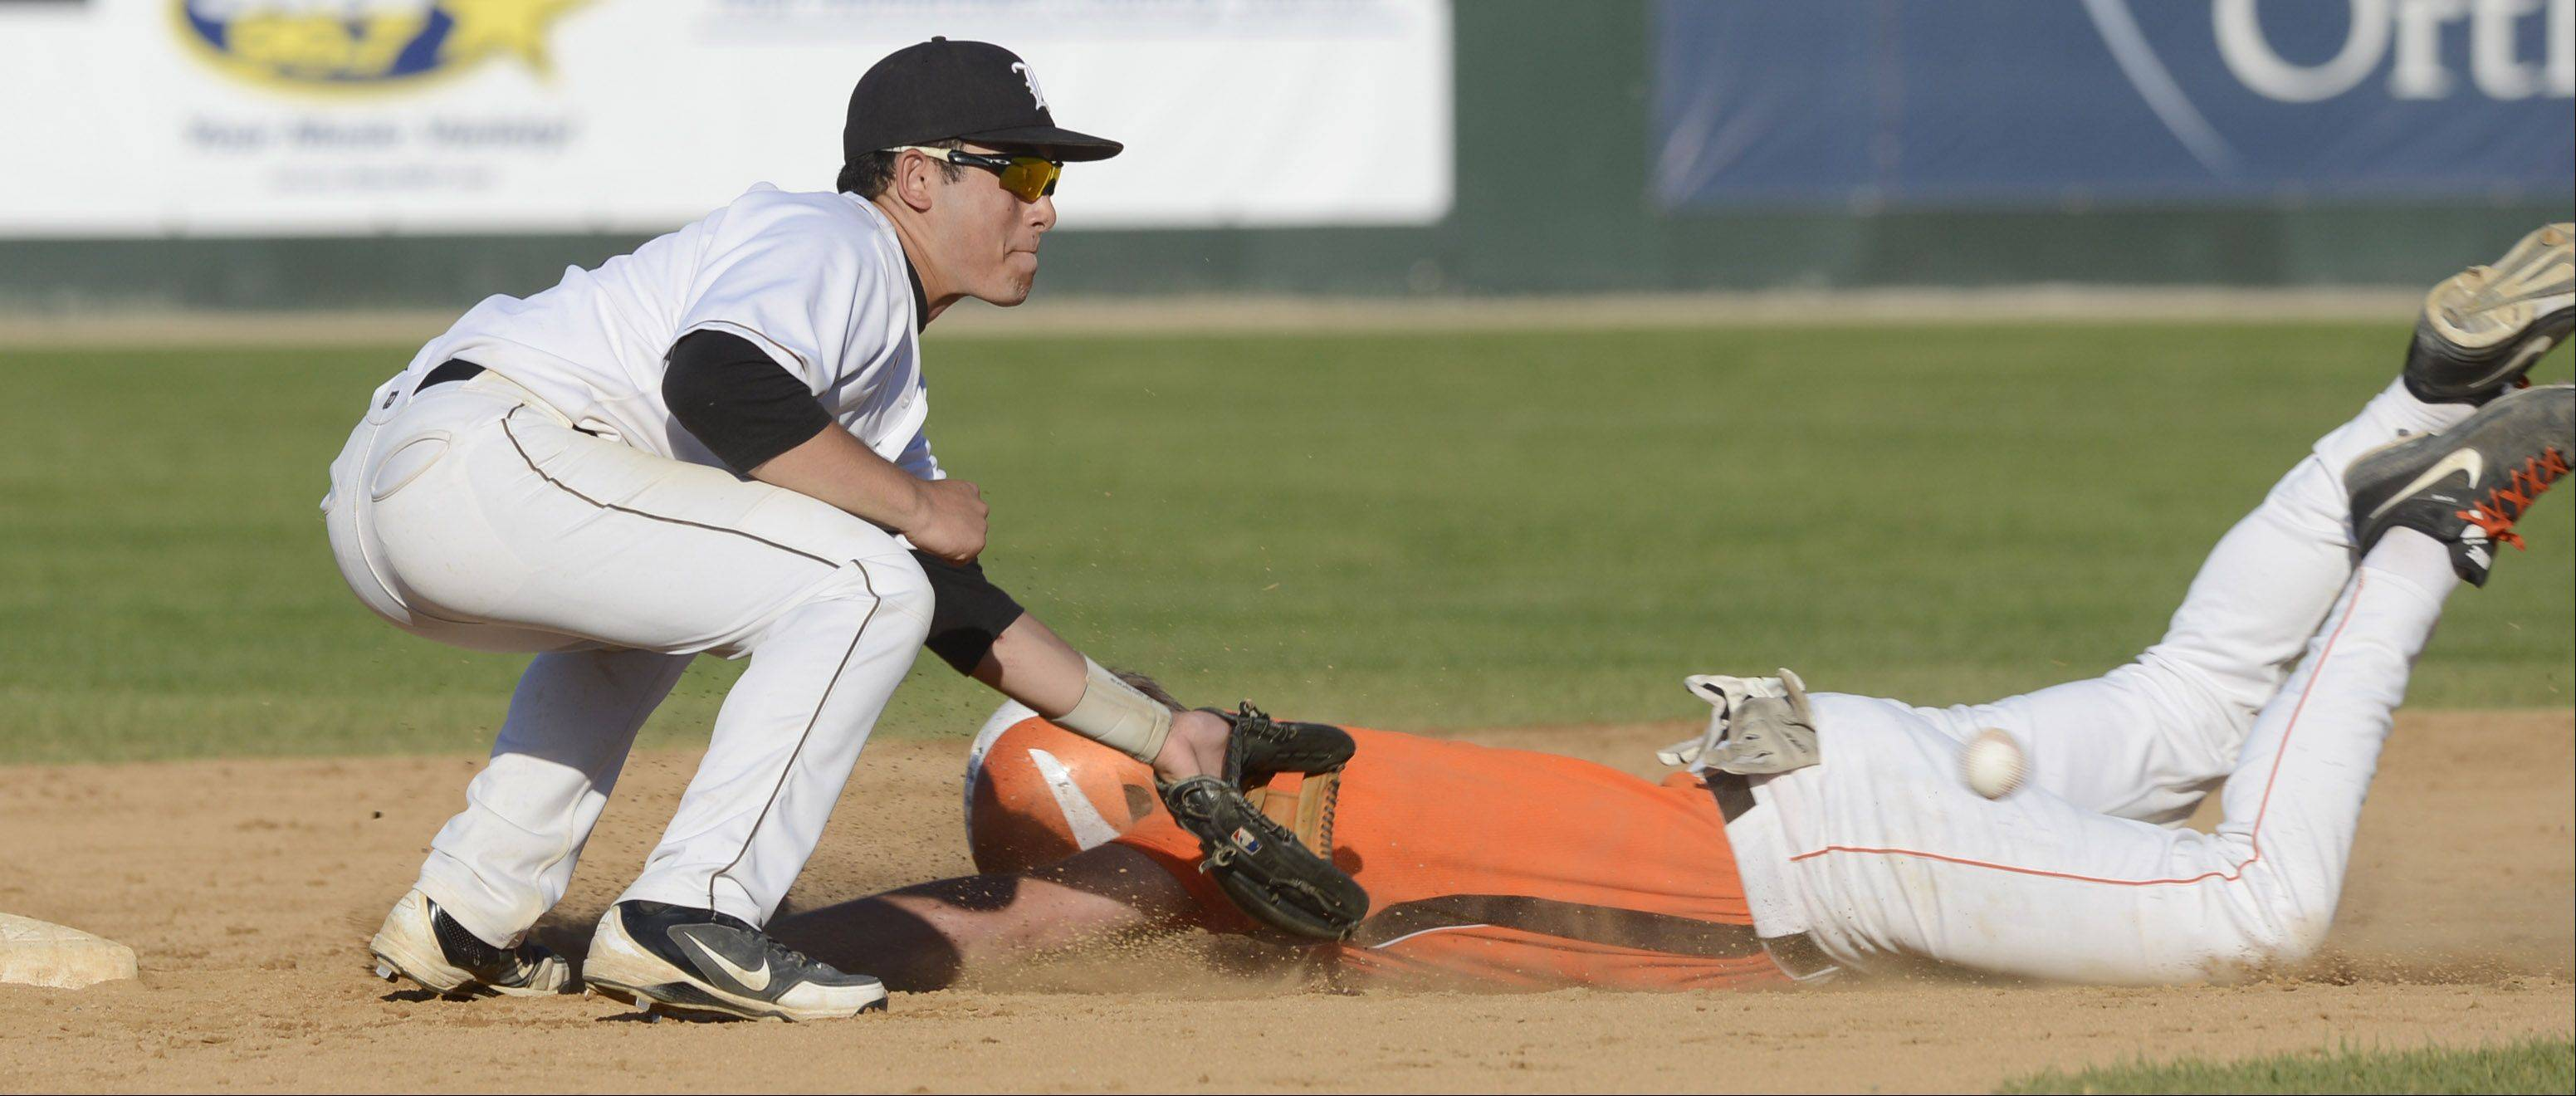 St. Charles East's Erik Anderson steals second base as Libertyville's Noah Greenberg applies the tag in the fourth inning.